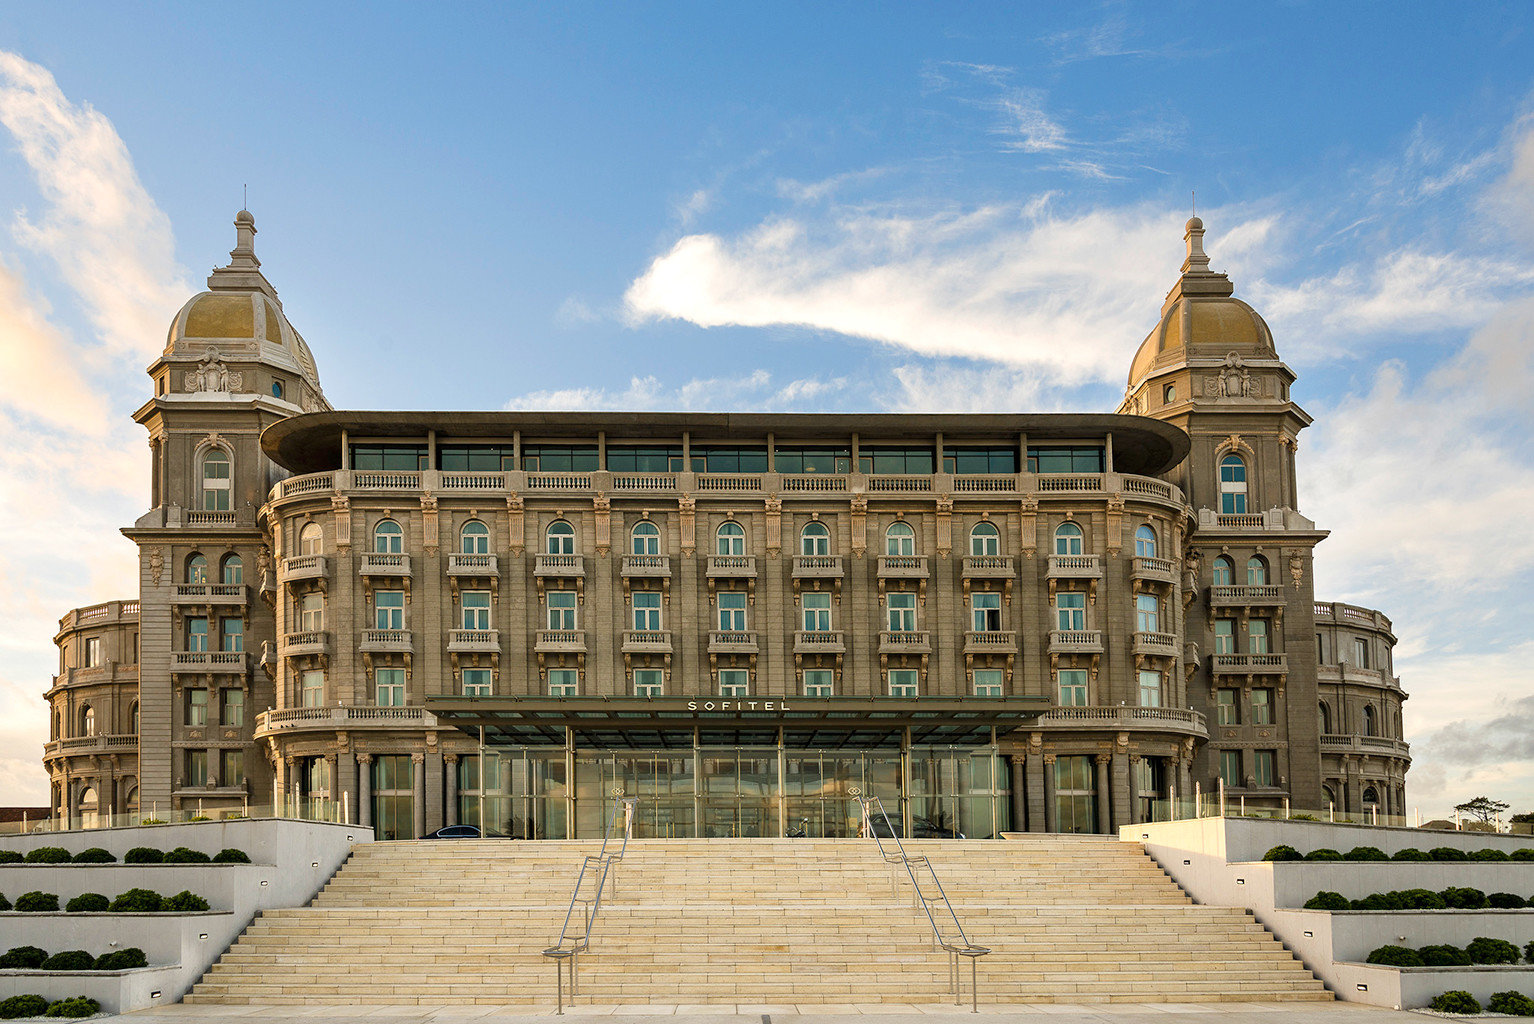 Architecture Buildings Exterior Luxury Resort building sky landmark palace classical architecture plaza château government building